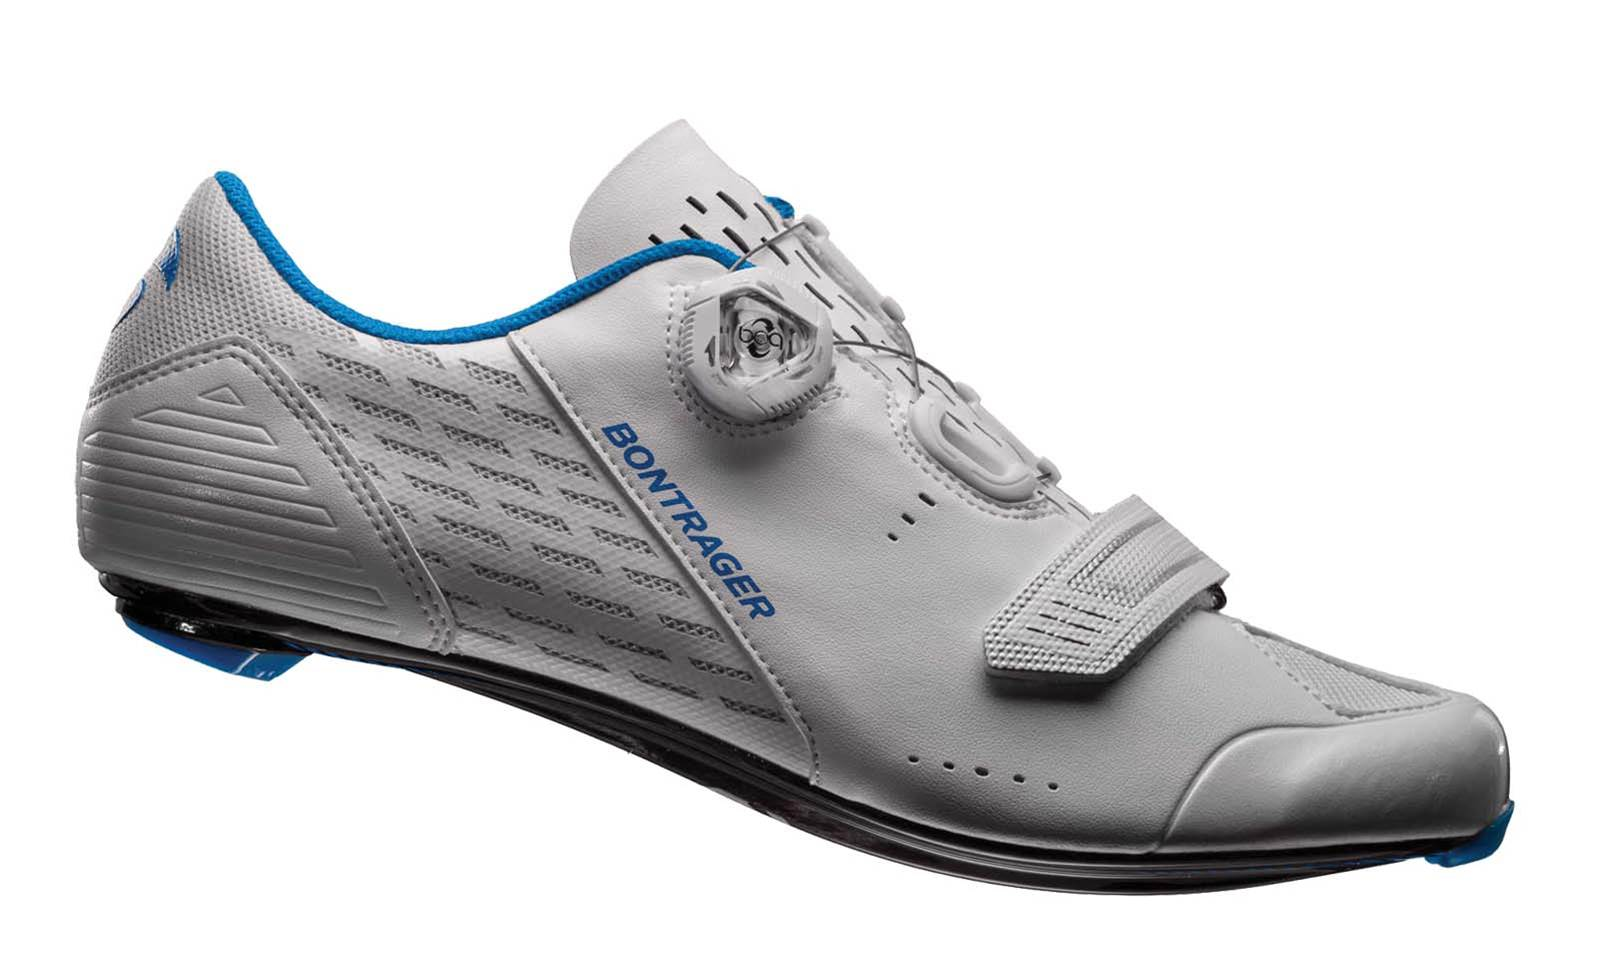 REVIEW: Bontrager women's Meraj shoes